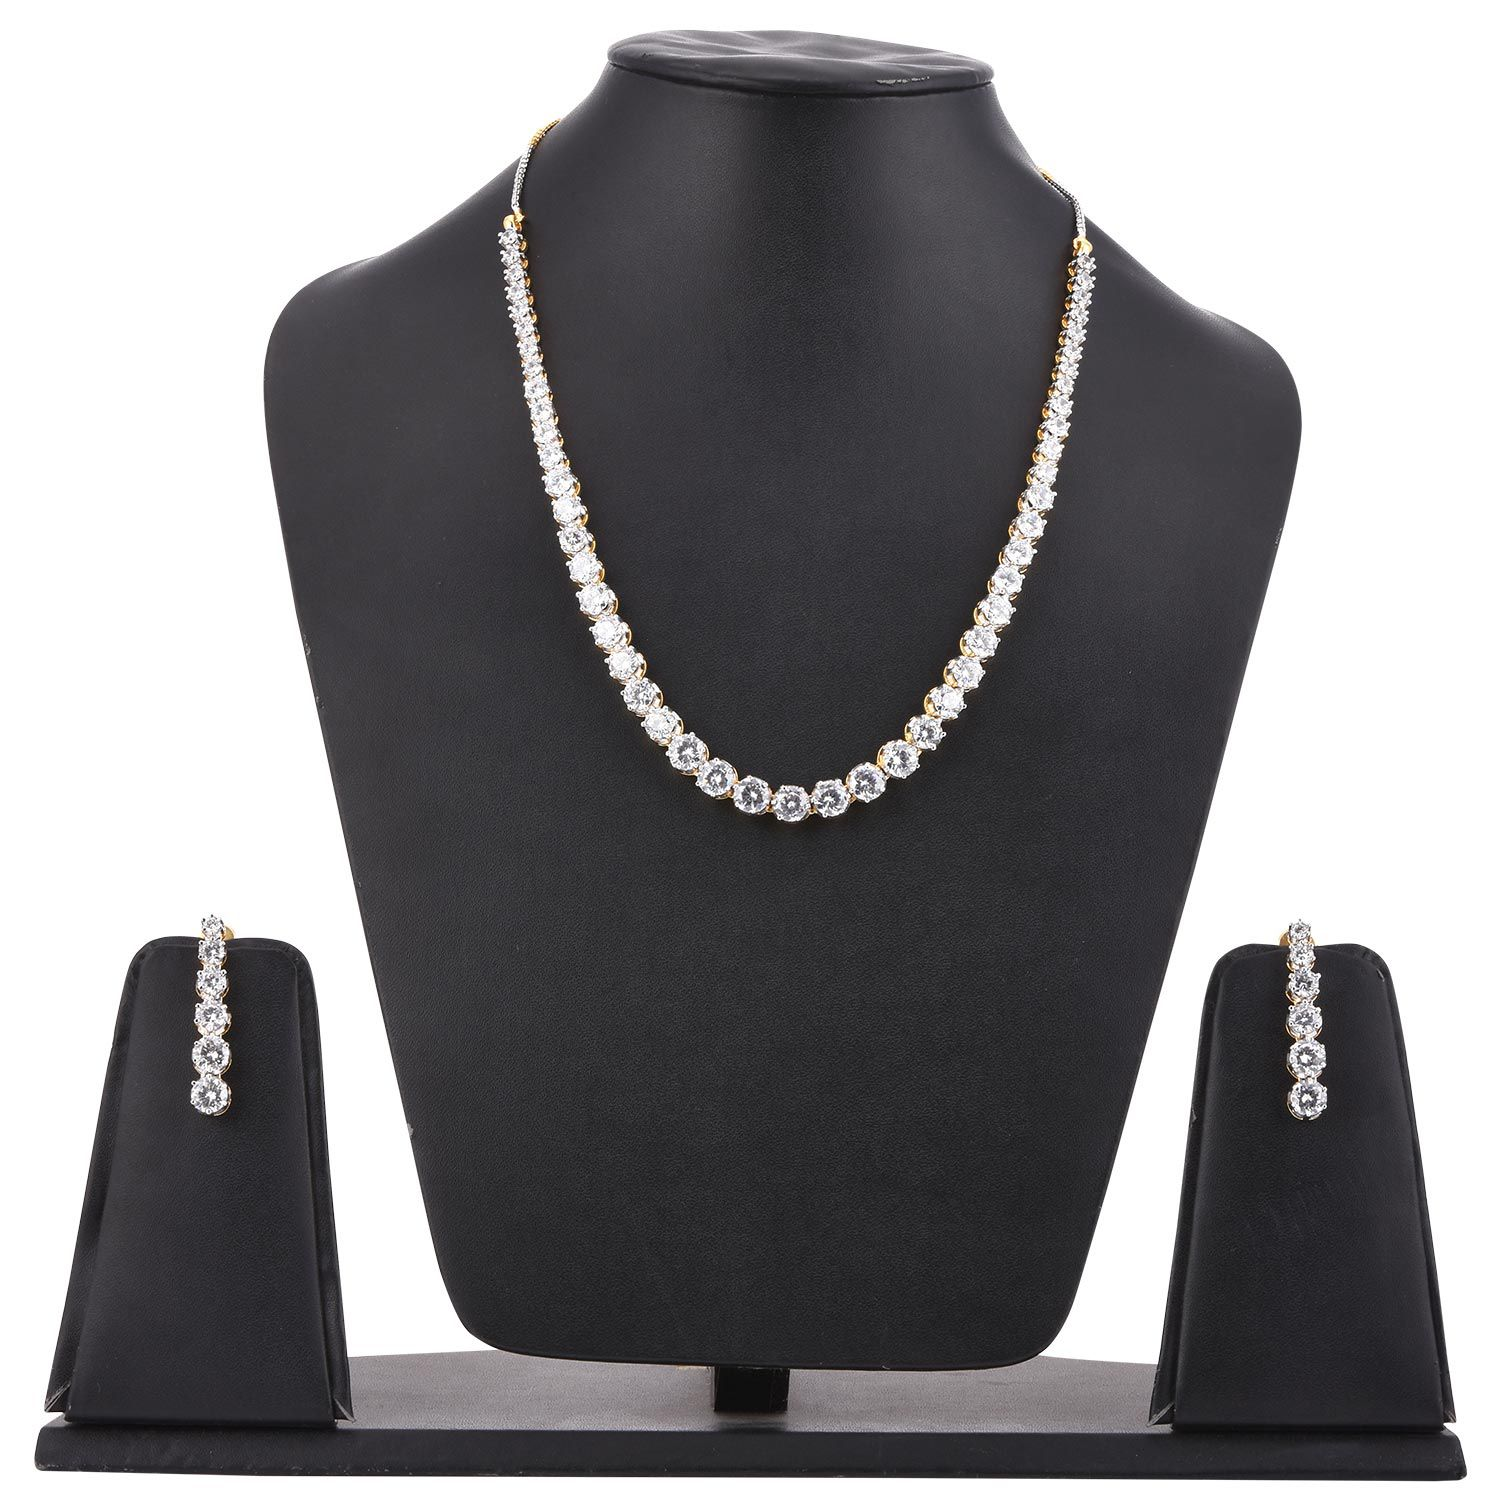 Tistabene Classic Modern Single Line Solitaire Latest Trendy Party Wear Necklace Set For Women and Girls (NS-0772)